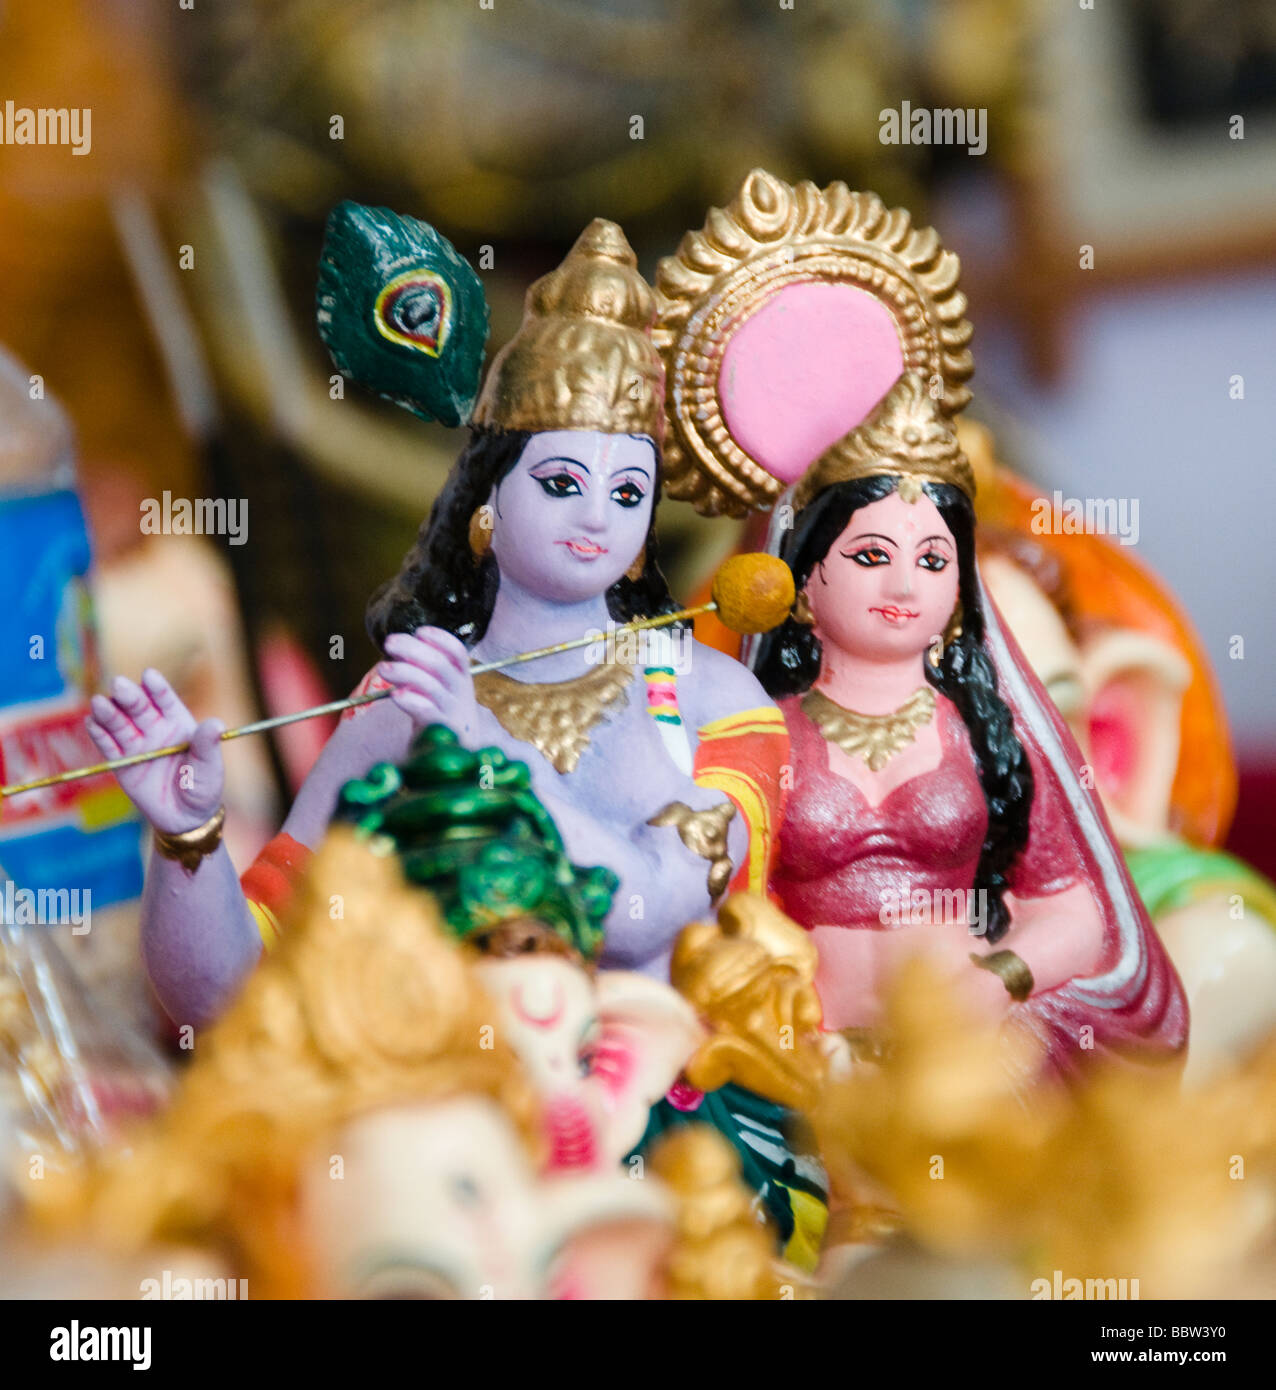 Hindu god idols, handicraft sale in India - Stock Image